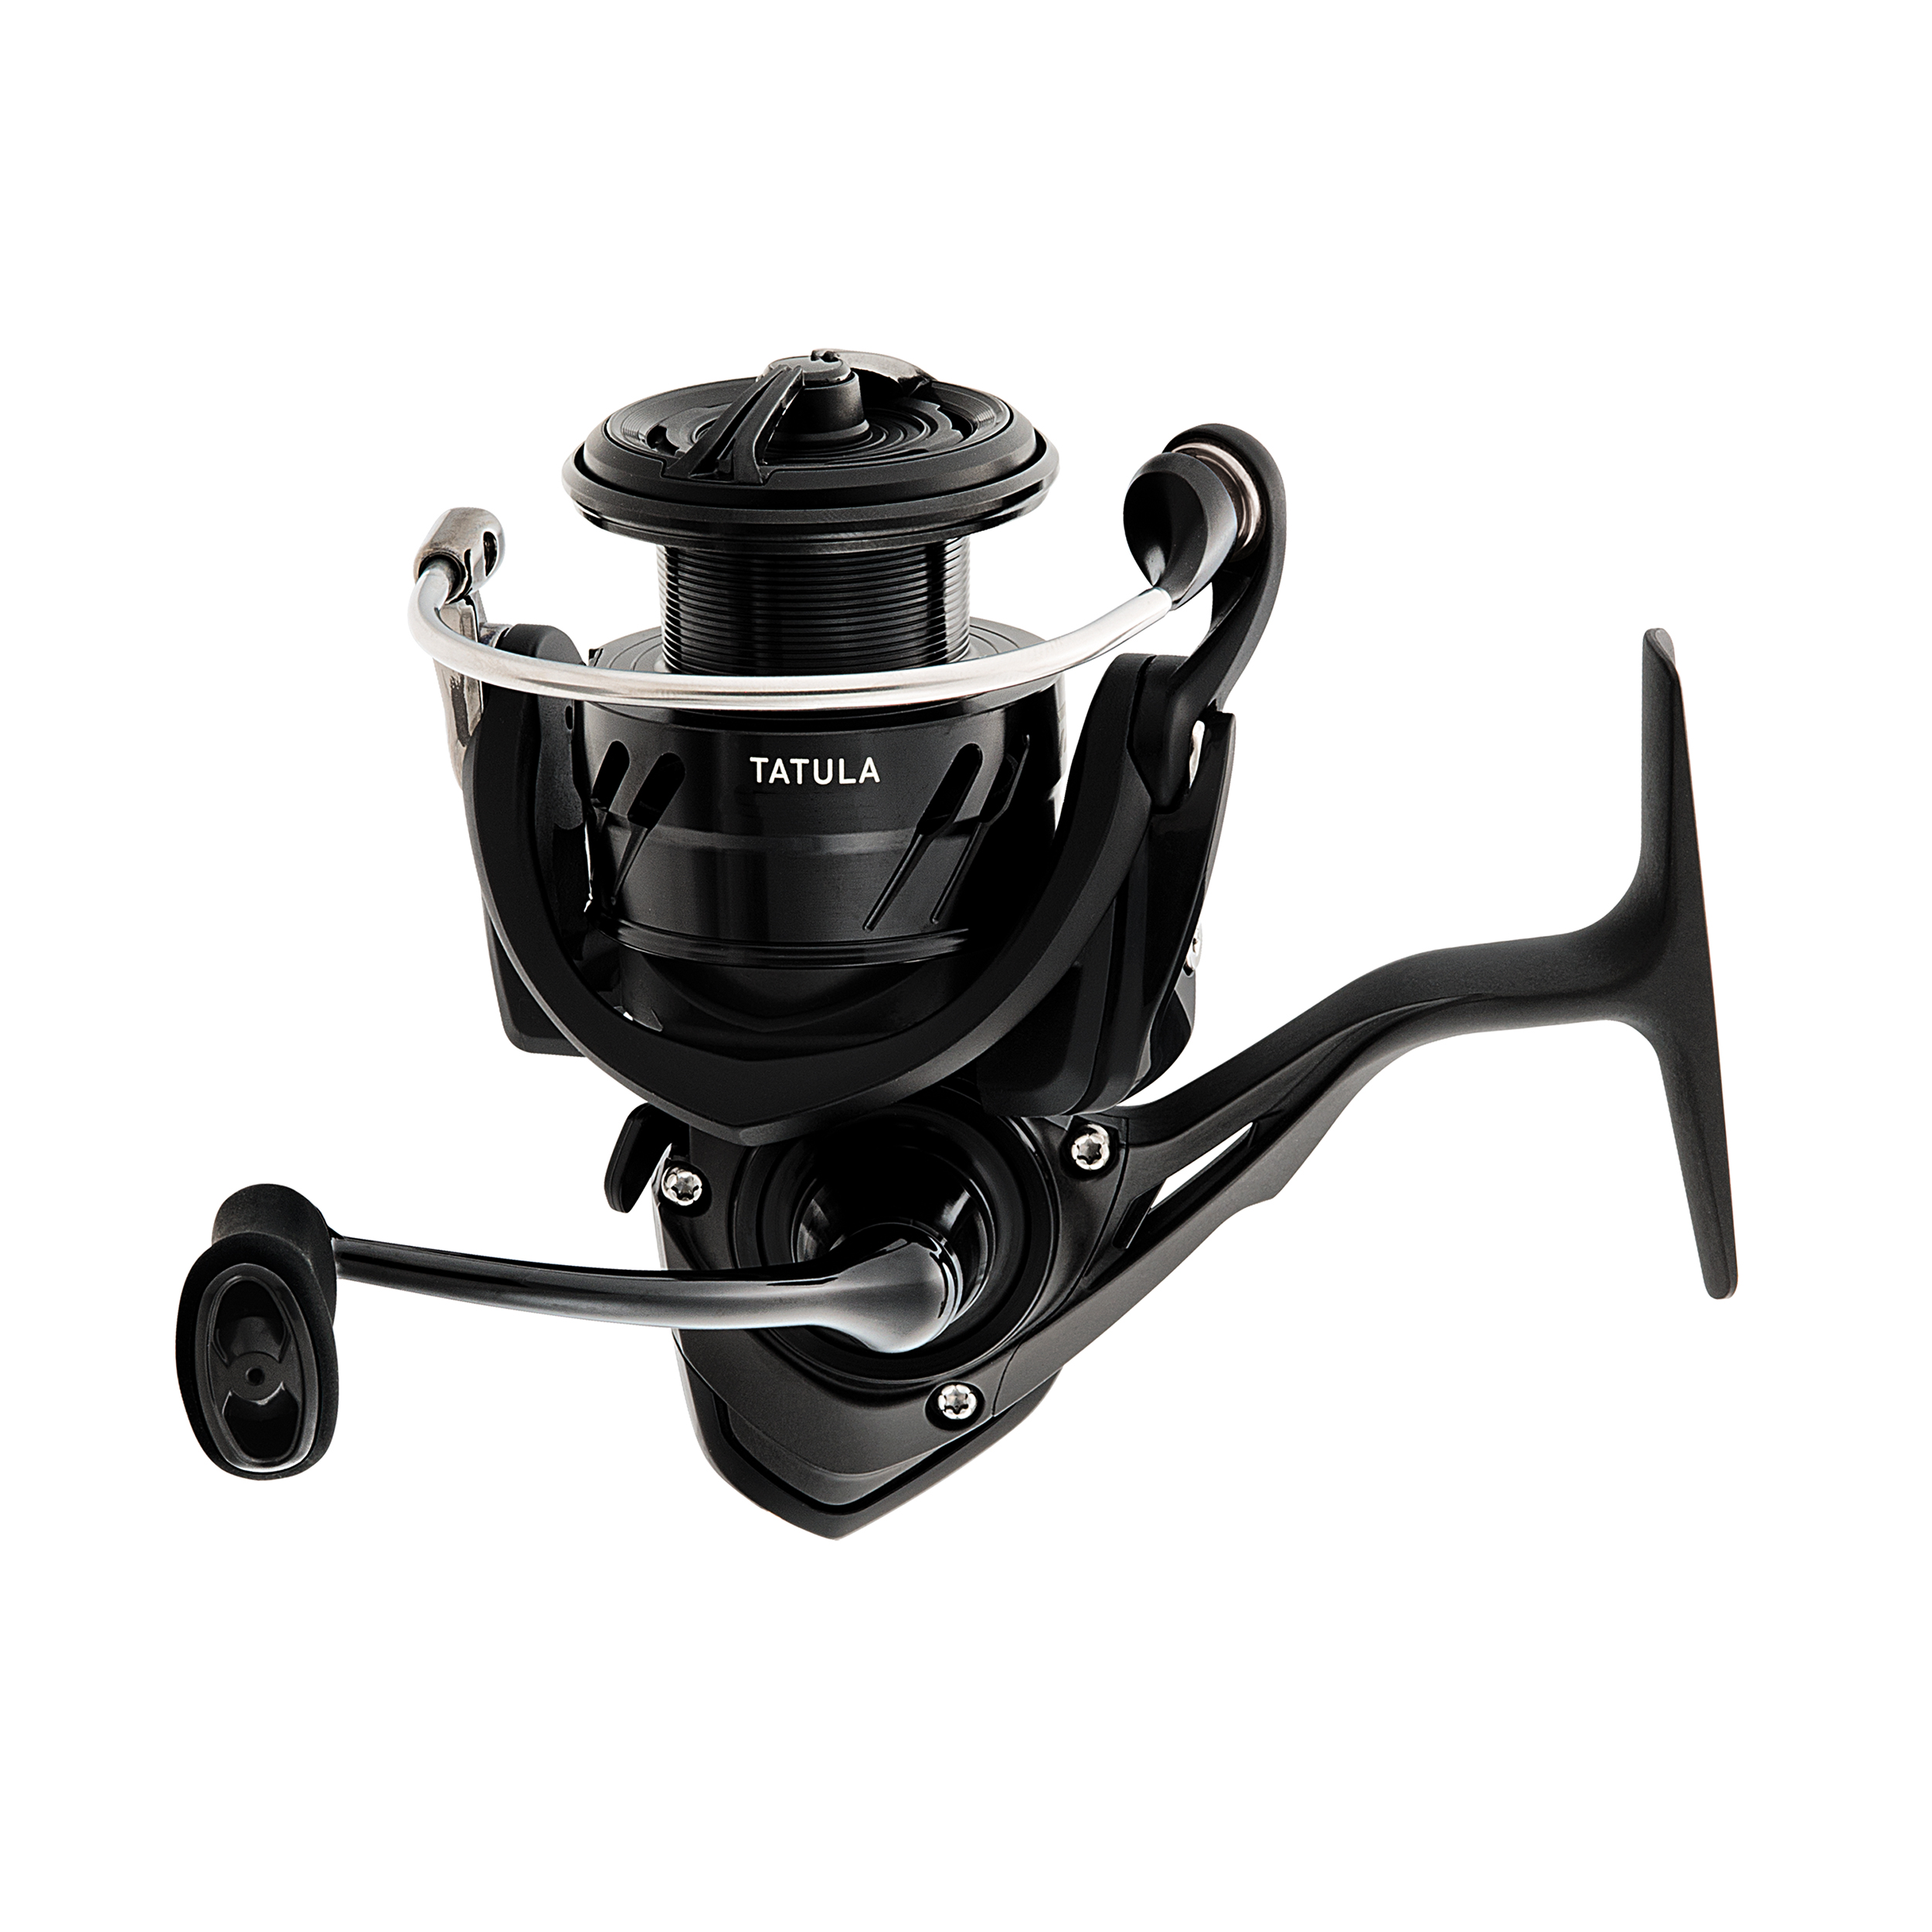 "Daiwa Tatula LT Spinning Reel 1000, 6.2:1 Gear Ratio, 30.50"" Retrieve Rate, 11 lb Max Drag, Ambidextrous"